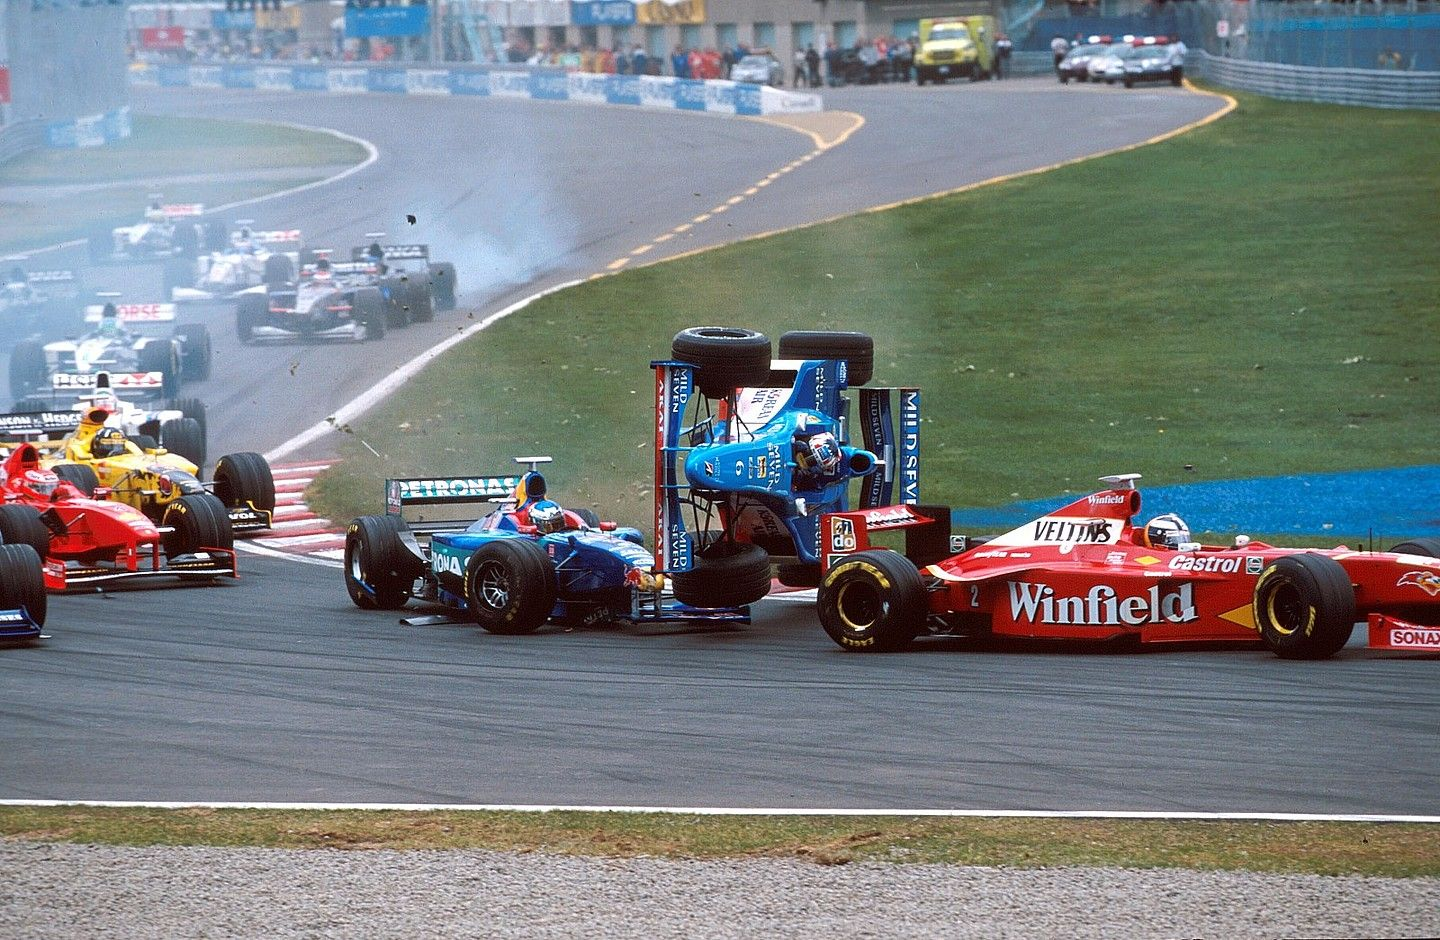 Start of the 1998 Canadian GP in Montreal.